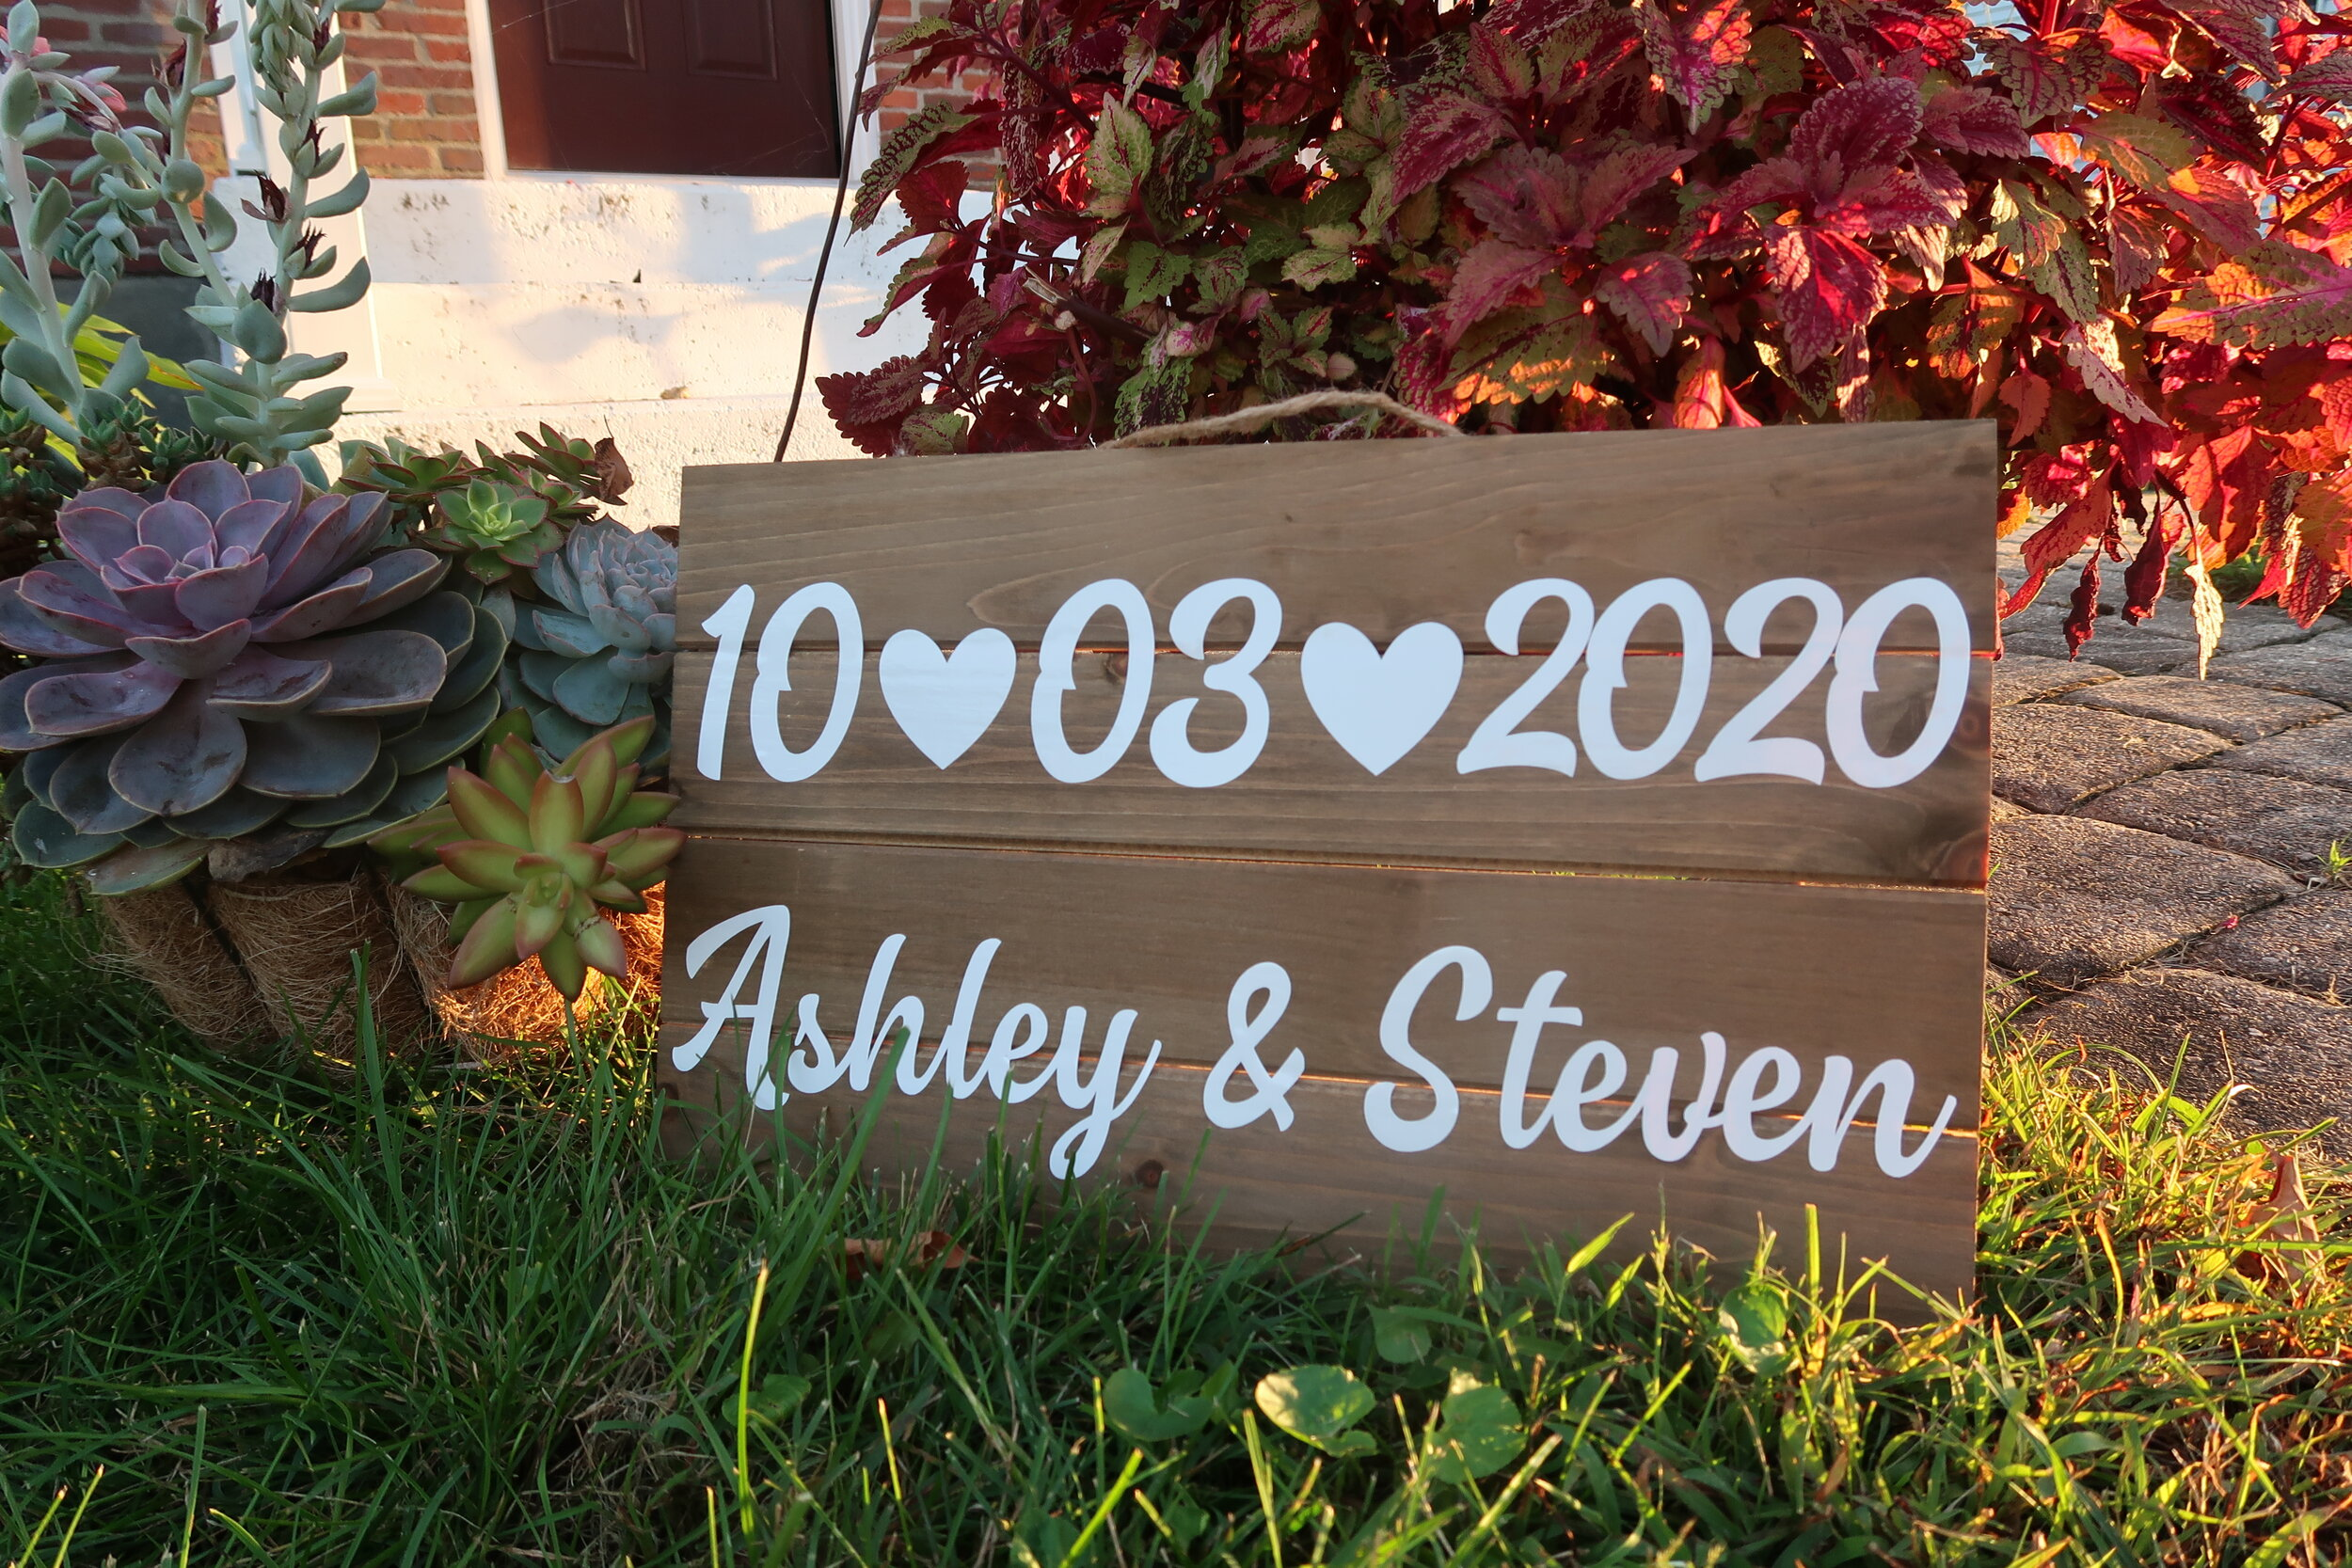 Save the date engagement sign - Perfect for engagement photos used on save the dates! Also makes the perfect keepsake!